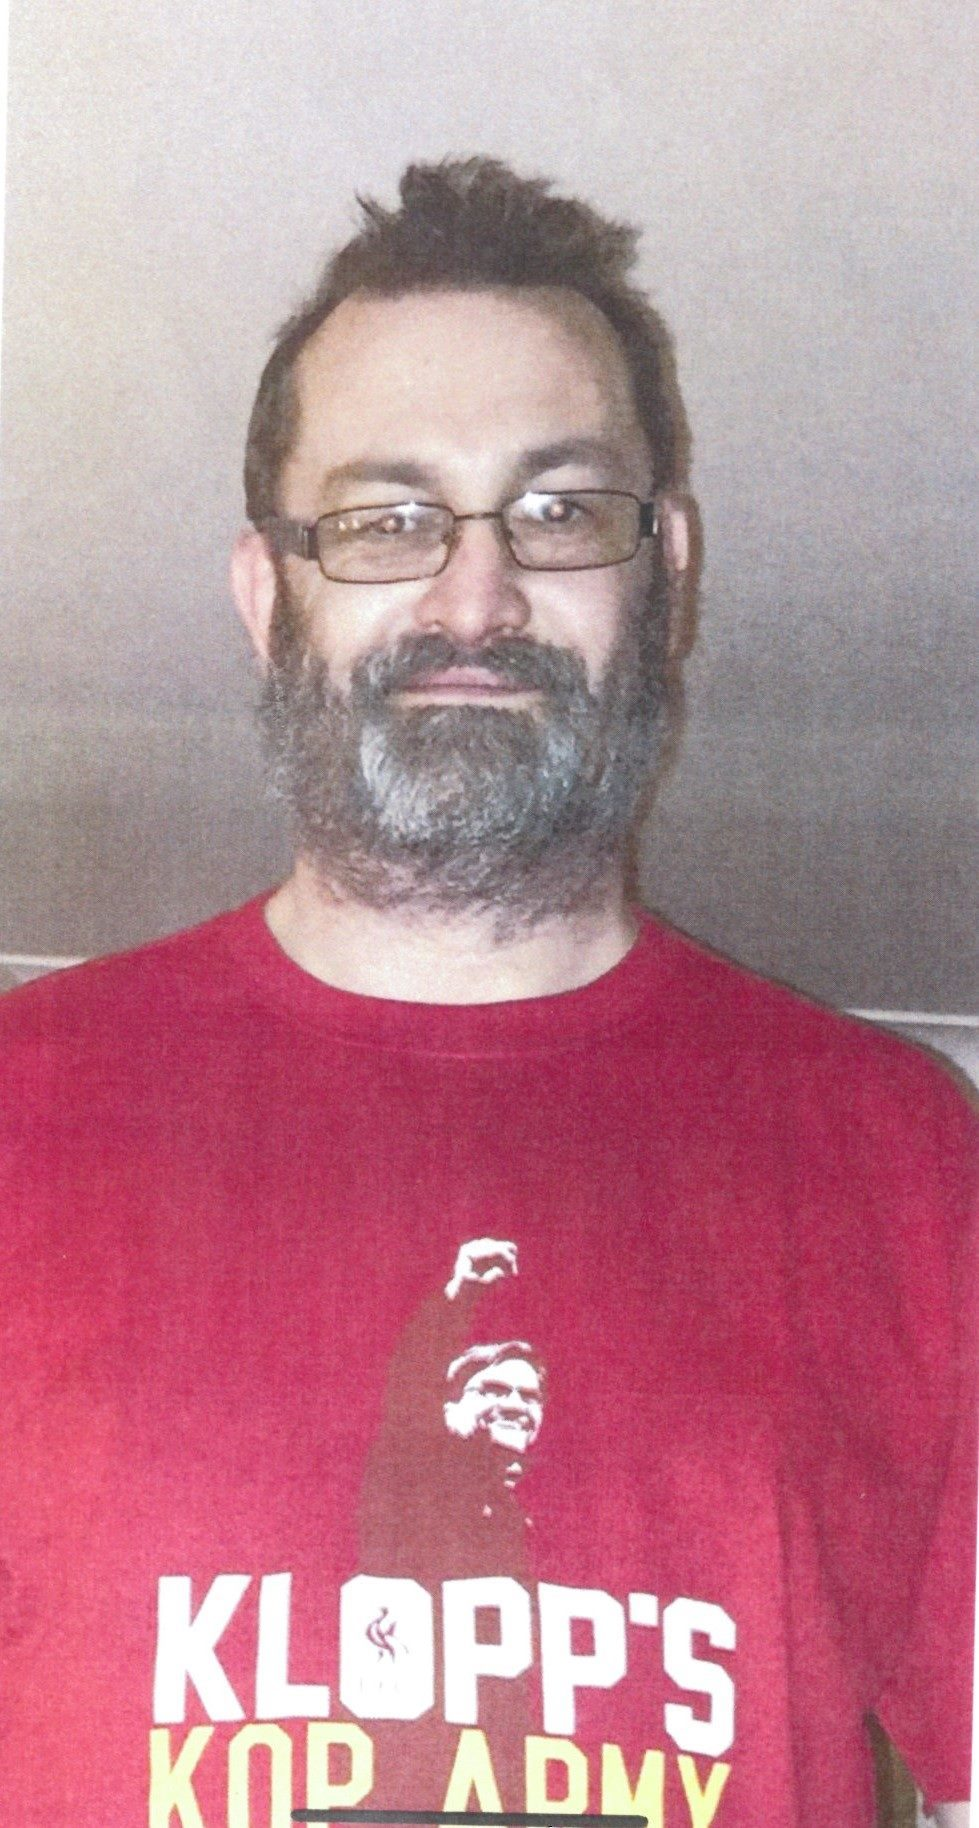 46-year-old Jamie Williams has been missing since July 27.